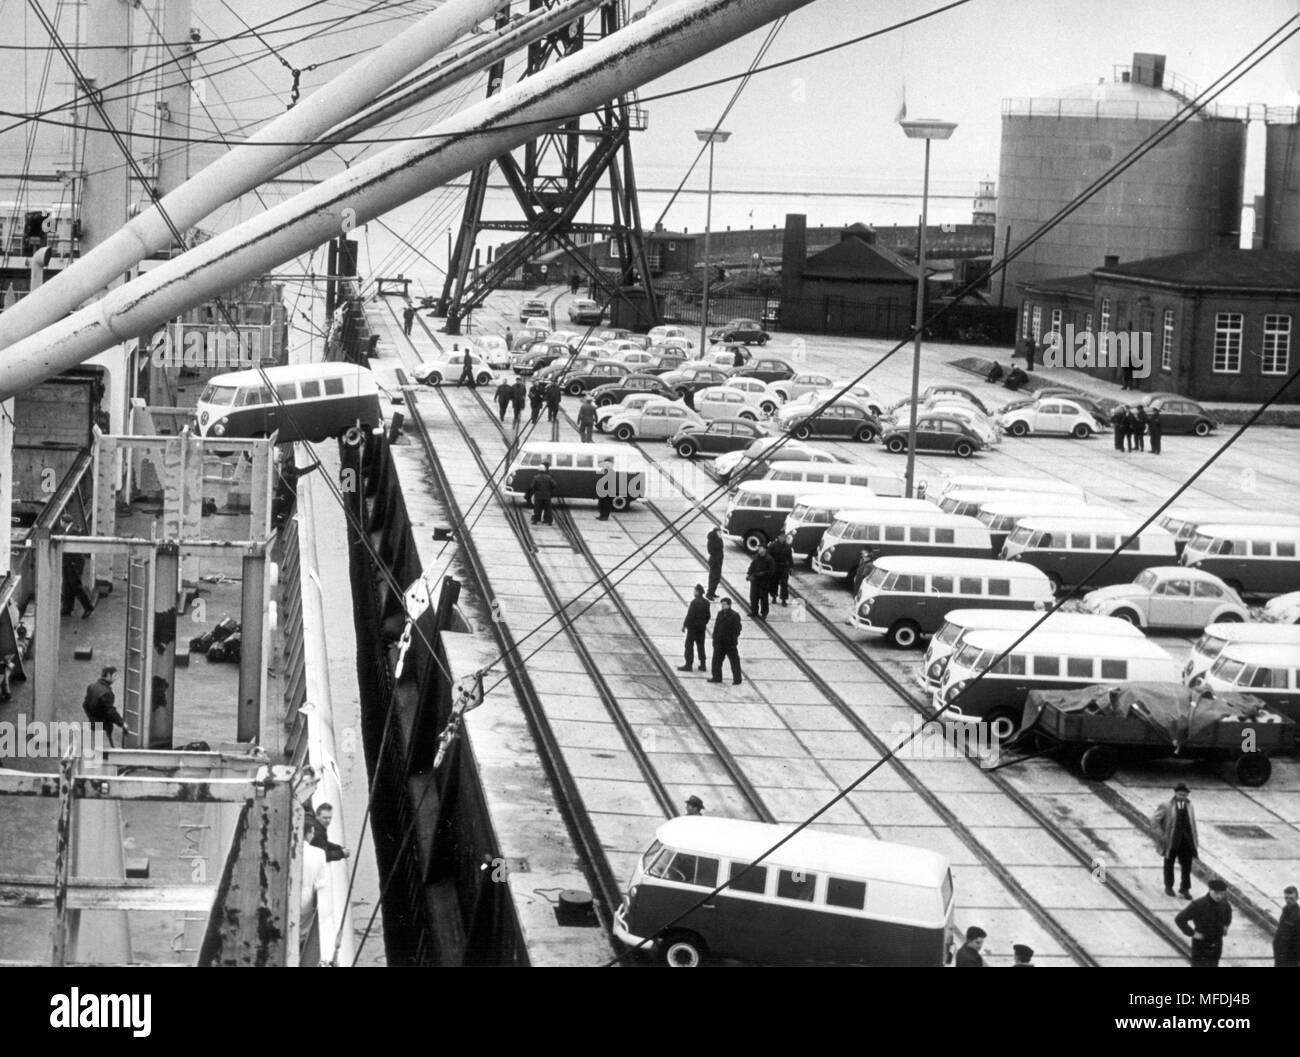 Loading of VW vehicles on the Norwegian special motor vessel 'Jarabella' on March 10, 1965 in the port of Emden. A total of 1125 Volkswagen '1200' and 225 VW transporters were loaded onto the cargo ship for shipment to Baltimore (USA). Further exports will follow. The production in the VW plant in Emden is intended exclusively for the supply of the North American market. In 1964 over 325,000 Volkswagen were sold to the USA. | usage worldwide - Stock Image